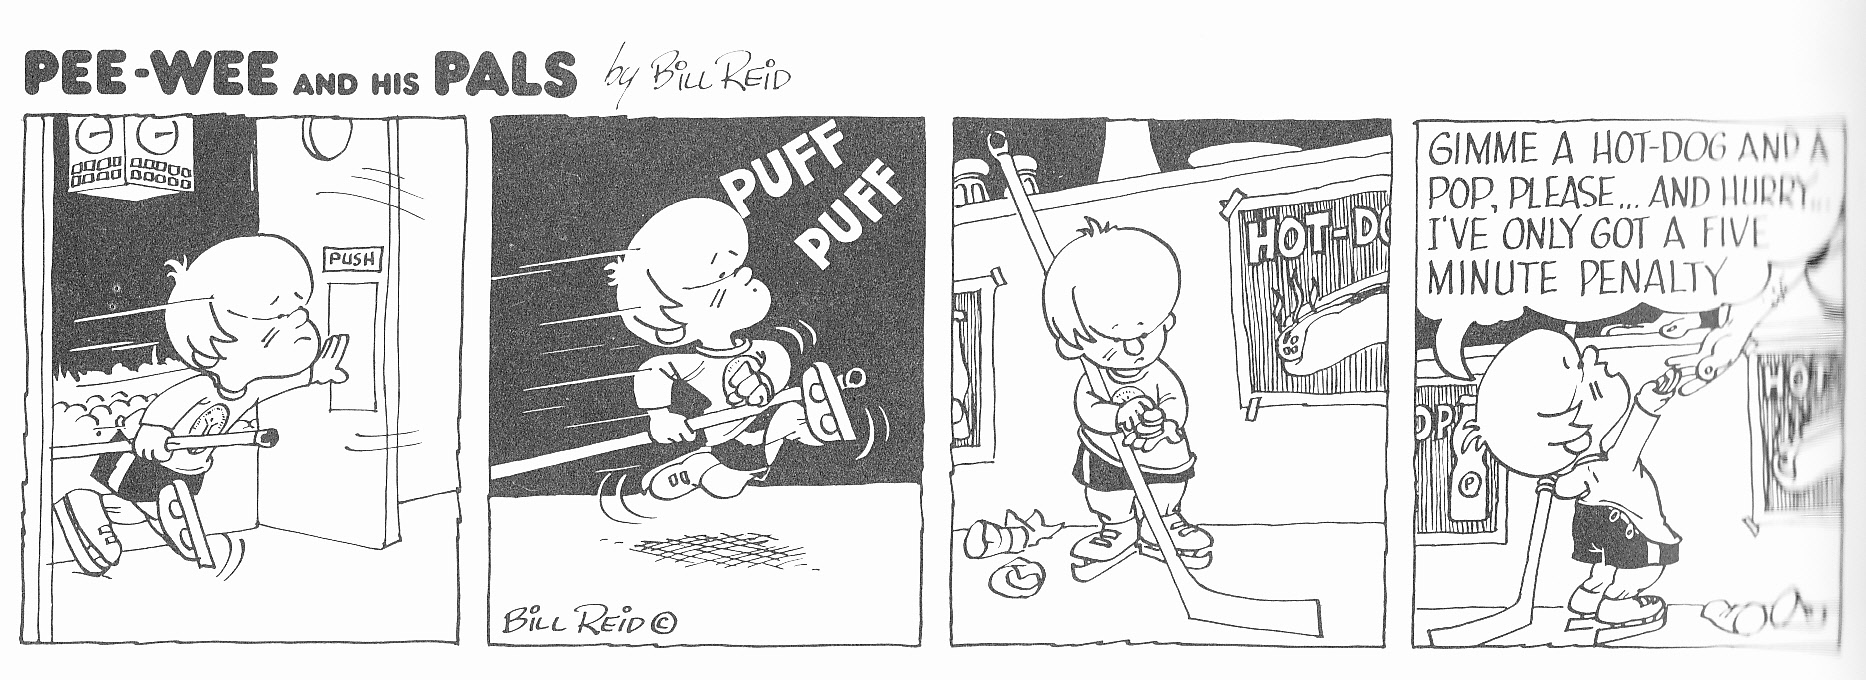 C:\Users\Robert\Documents\CARTOONING ILLUSTRATION ANIMATION\IMAGE CARTOON\IMAGE CARTOON P\PEEWEE & HIS PALS, Brian McFarlane's Hockey Annual, 1973, 58.jpg